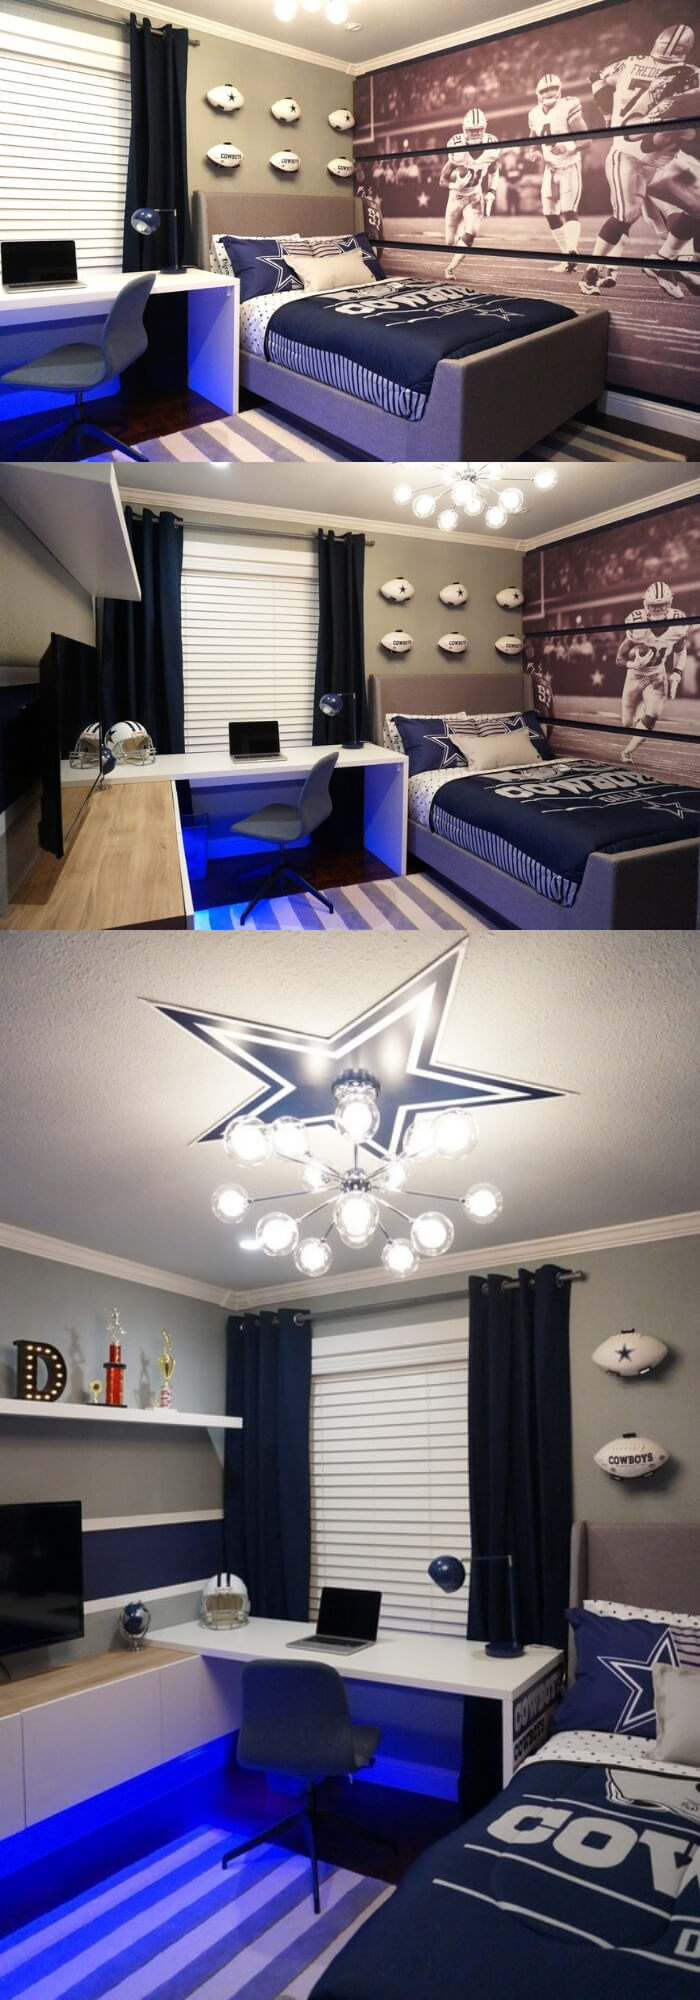 Sports Theme | Dallas Cowboys Bedroom | Cool Bedroom Ideas For Boys